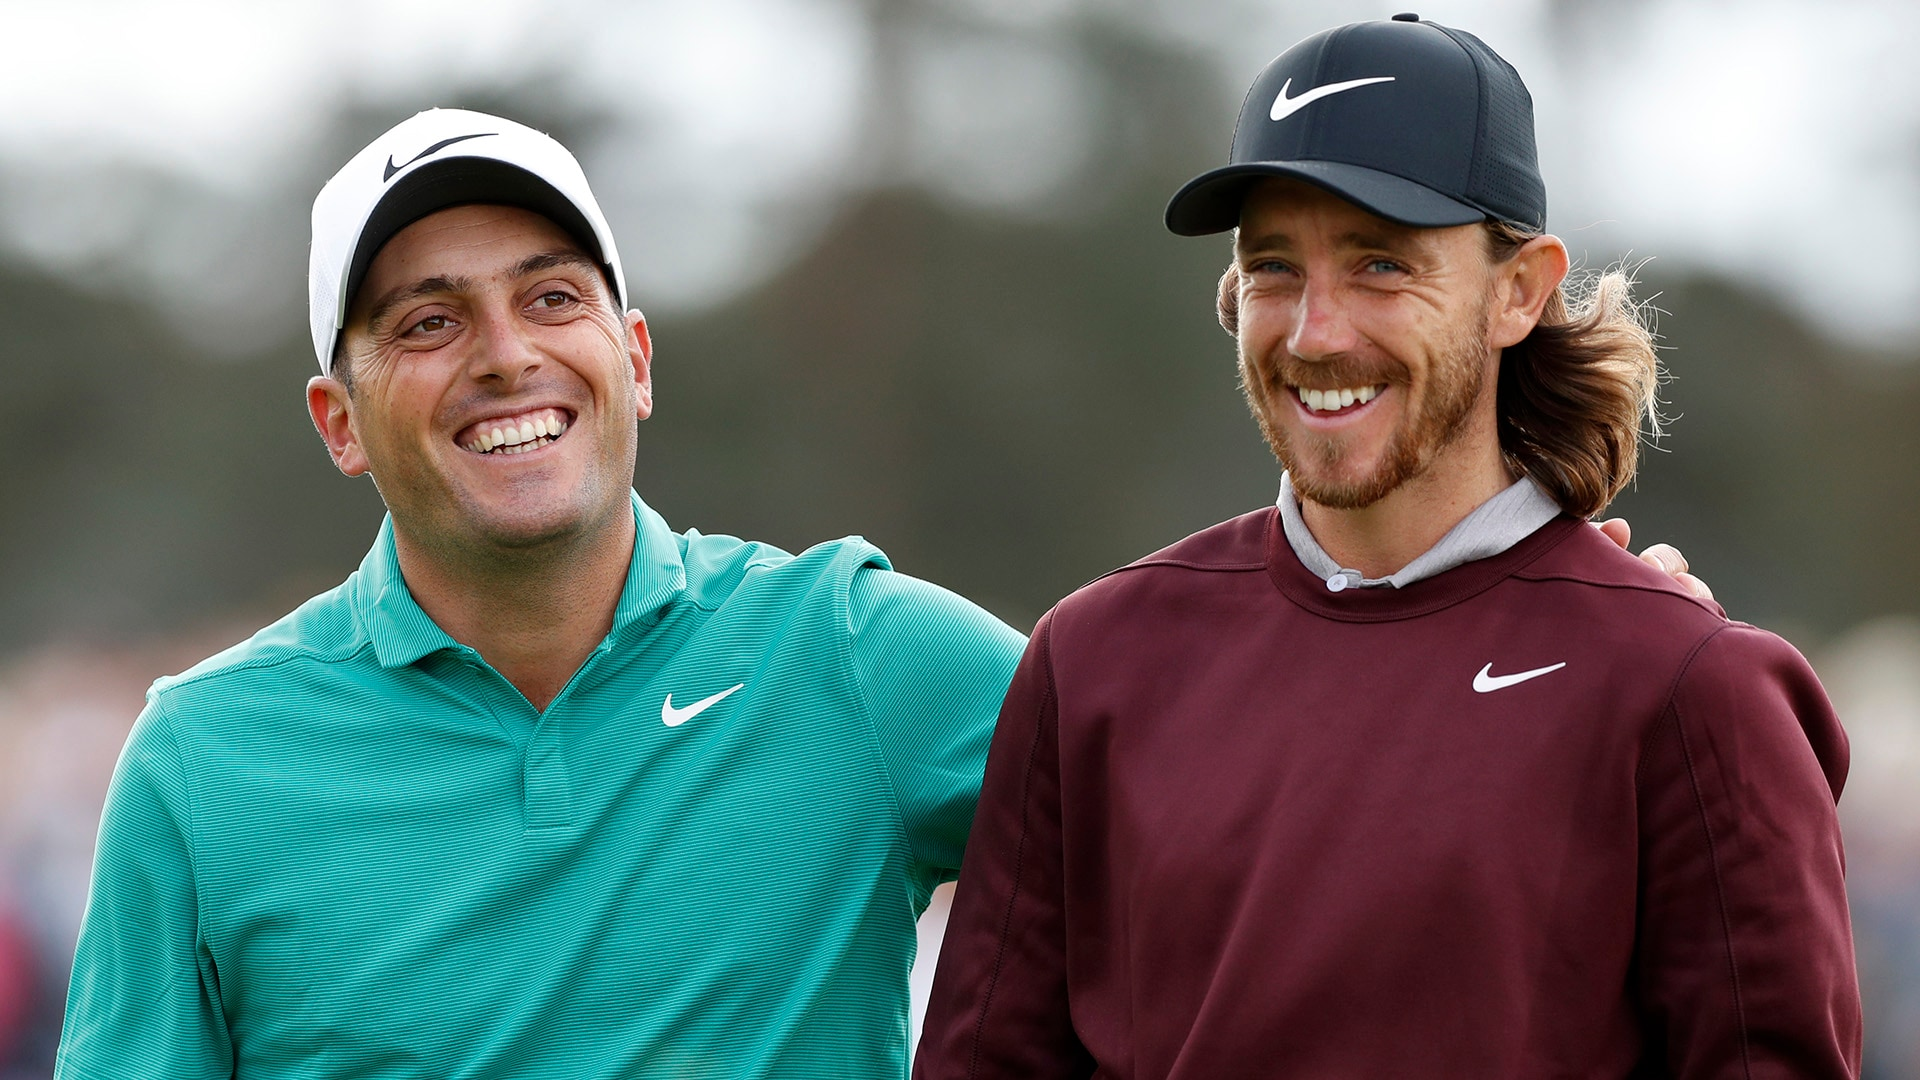 Francesco Molinari and Tommy Fleetwood at the 2018 British Masters